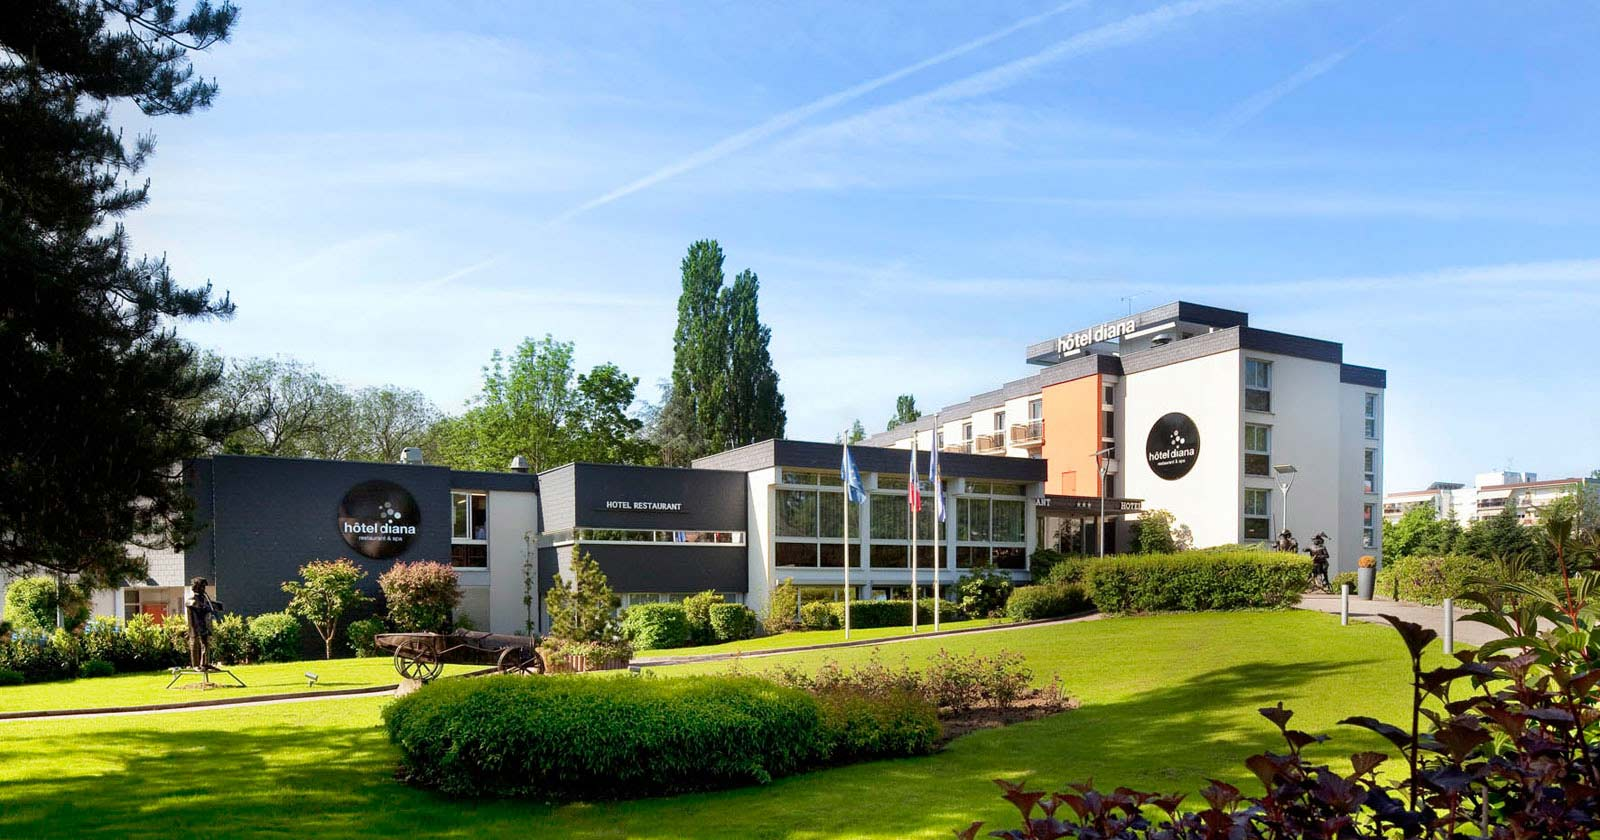 Appart Hotel Spa Alsace